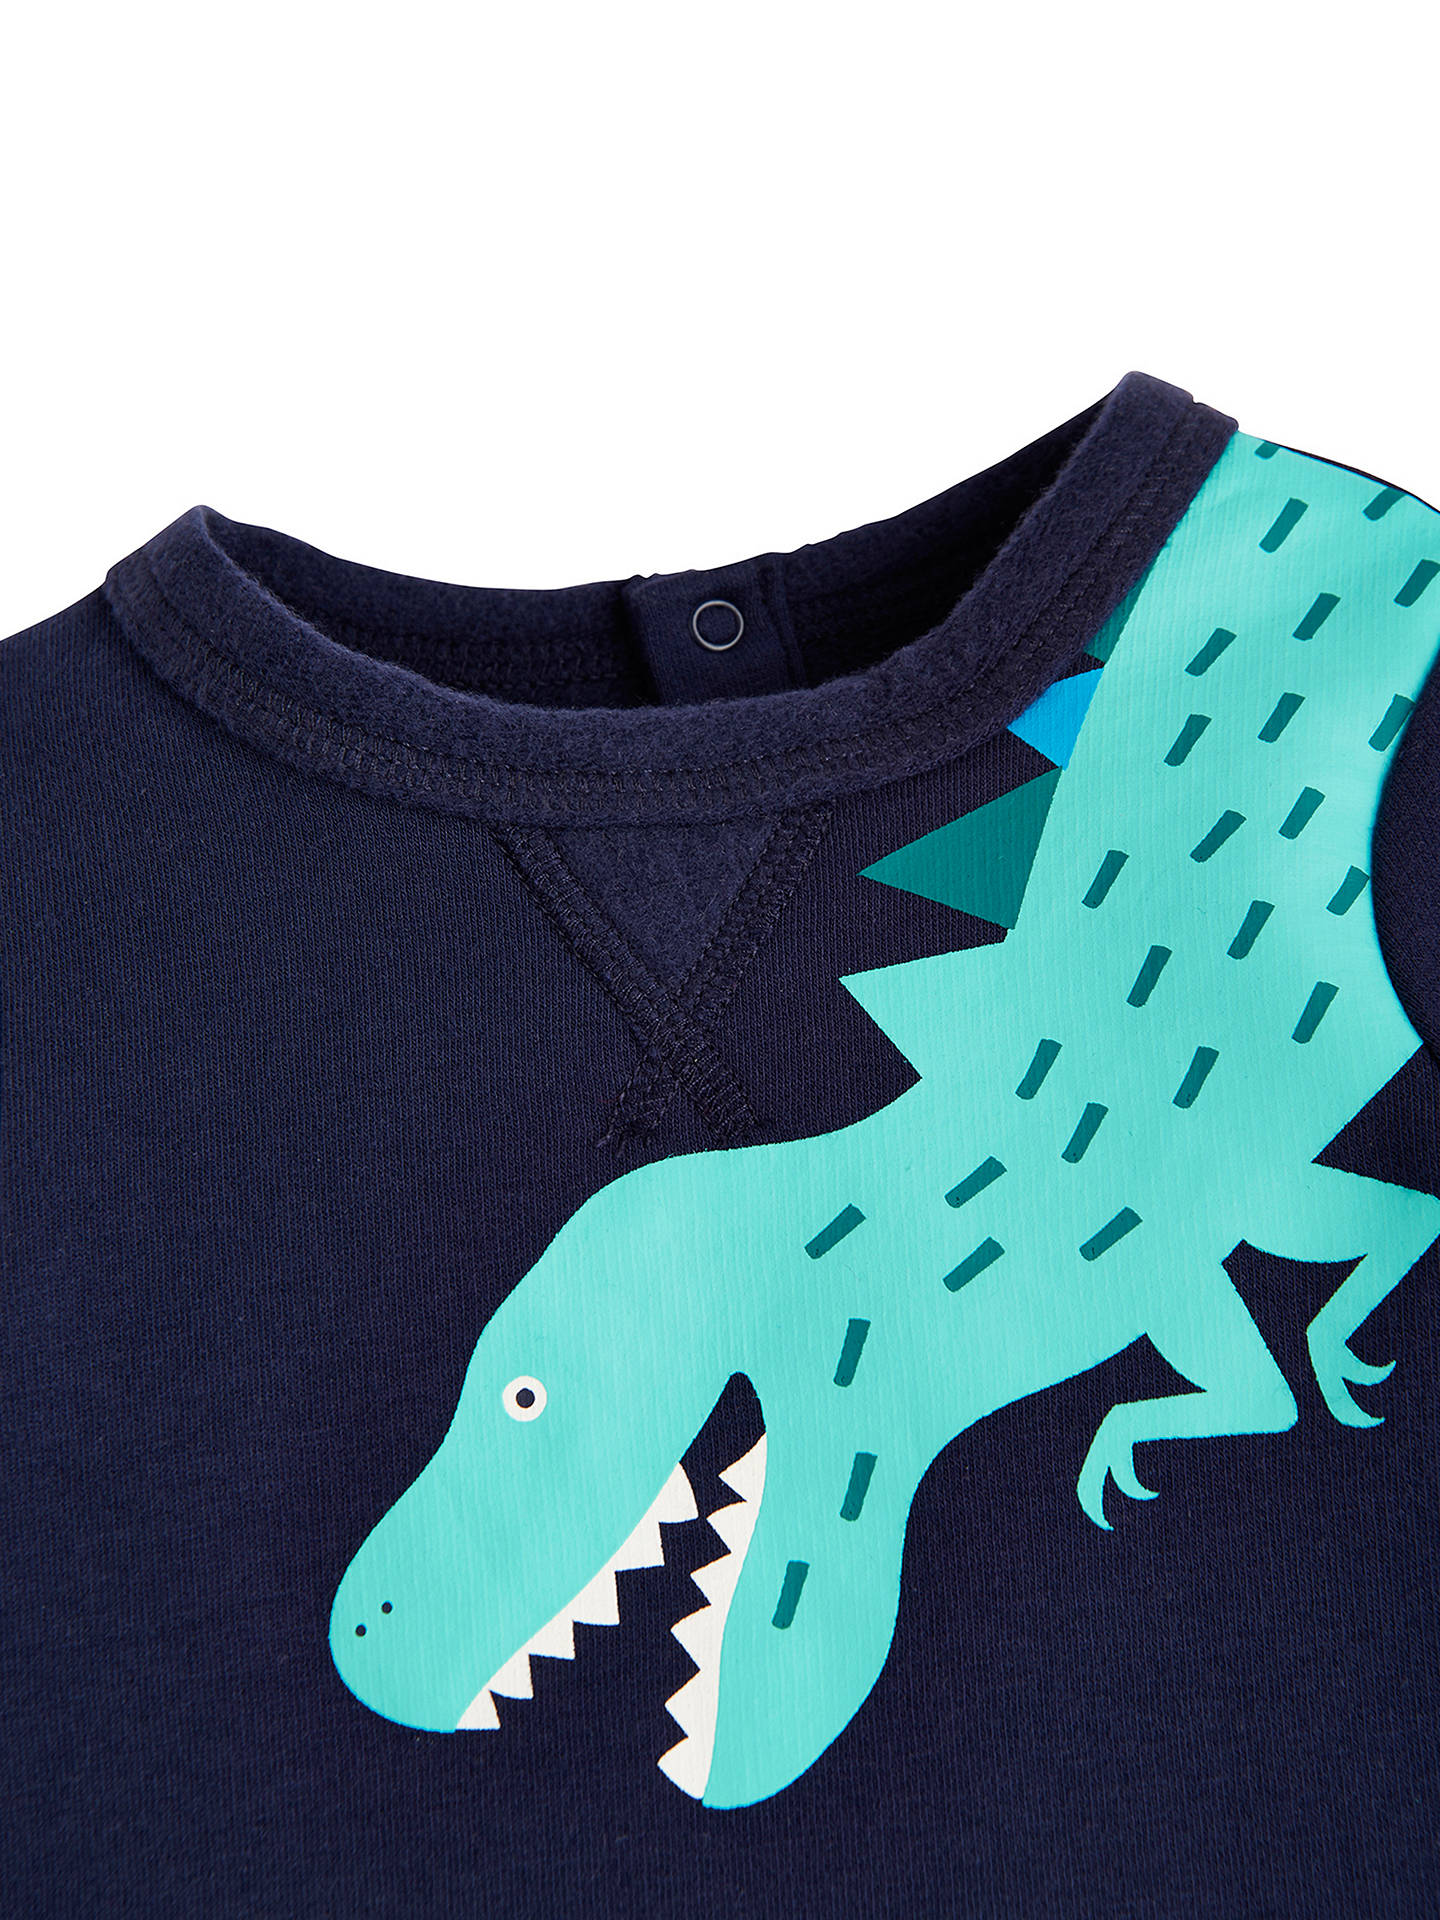 Buy Baby Joule Boo Dino Sweat Top, Navy, 0-3 months Online at johnlewis.com